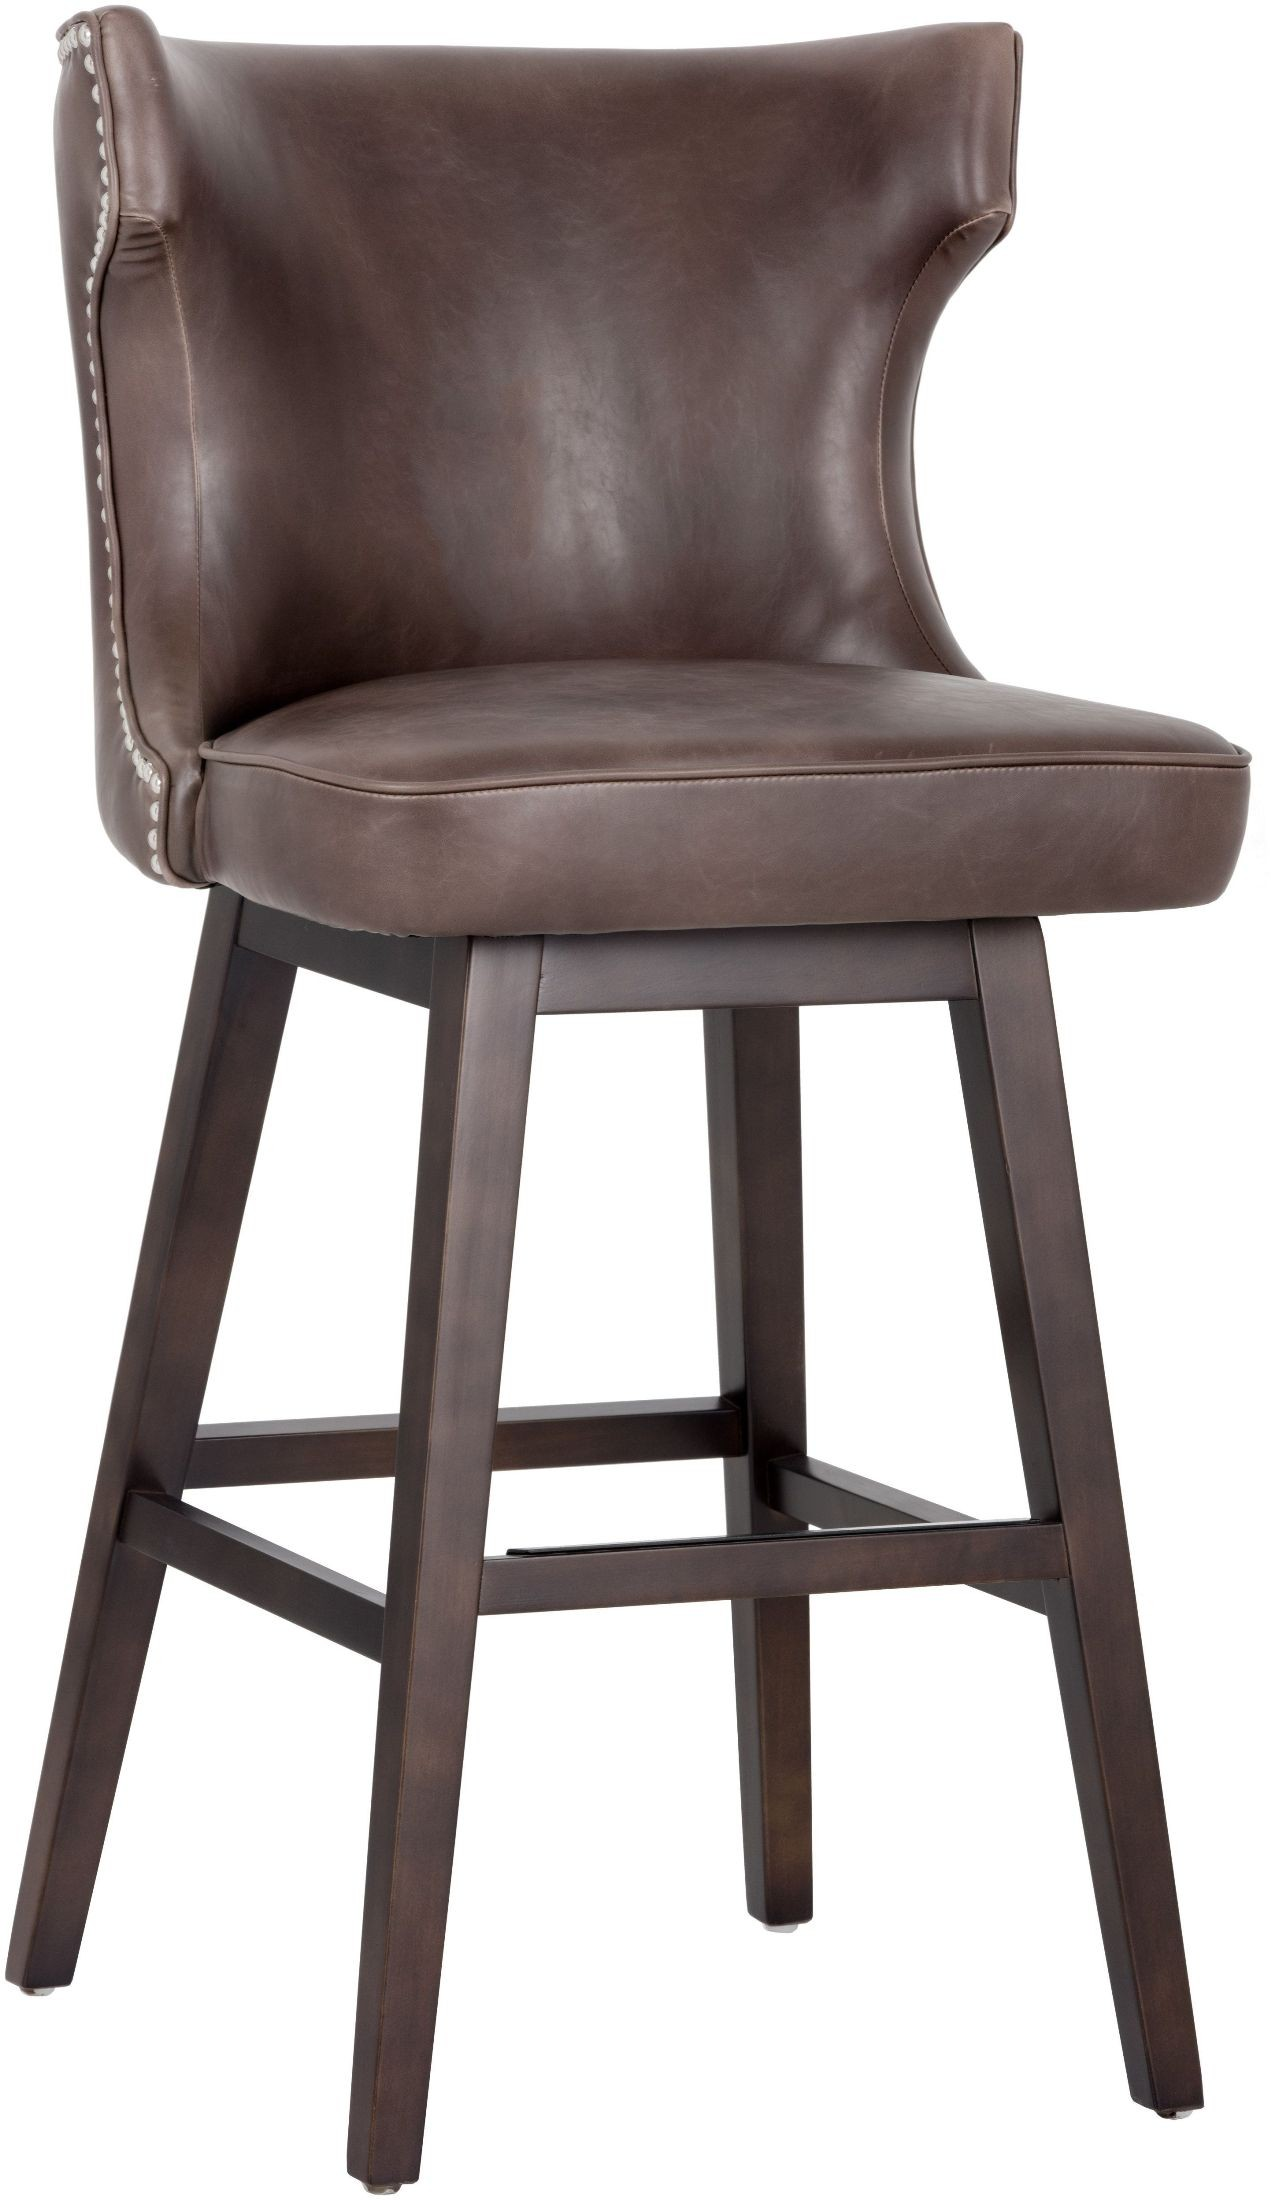 Neville Havana Dark Brown Swivel Barstool From Sunpan